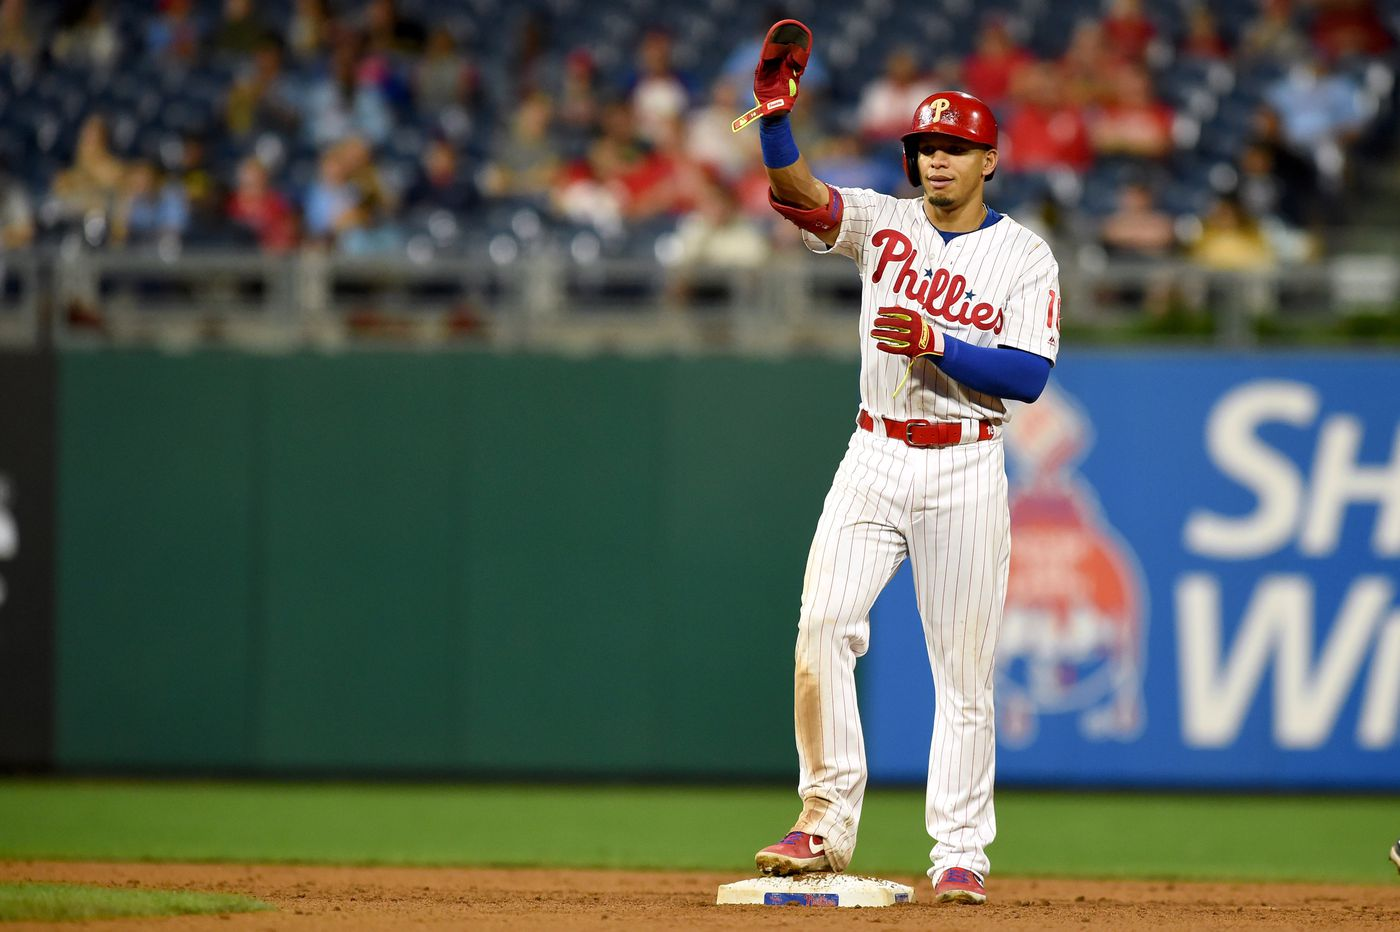 Cesar Hernandez's future with the Phillies looks cloudy at best | Bob Brookover